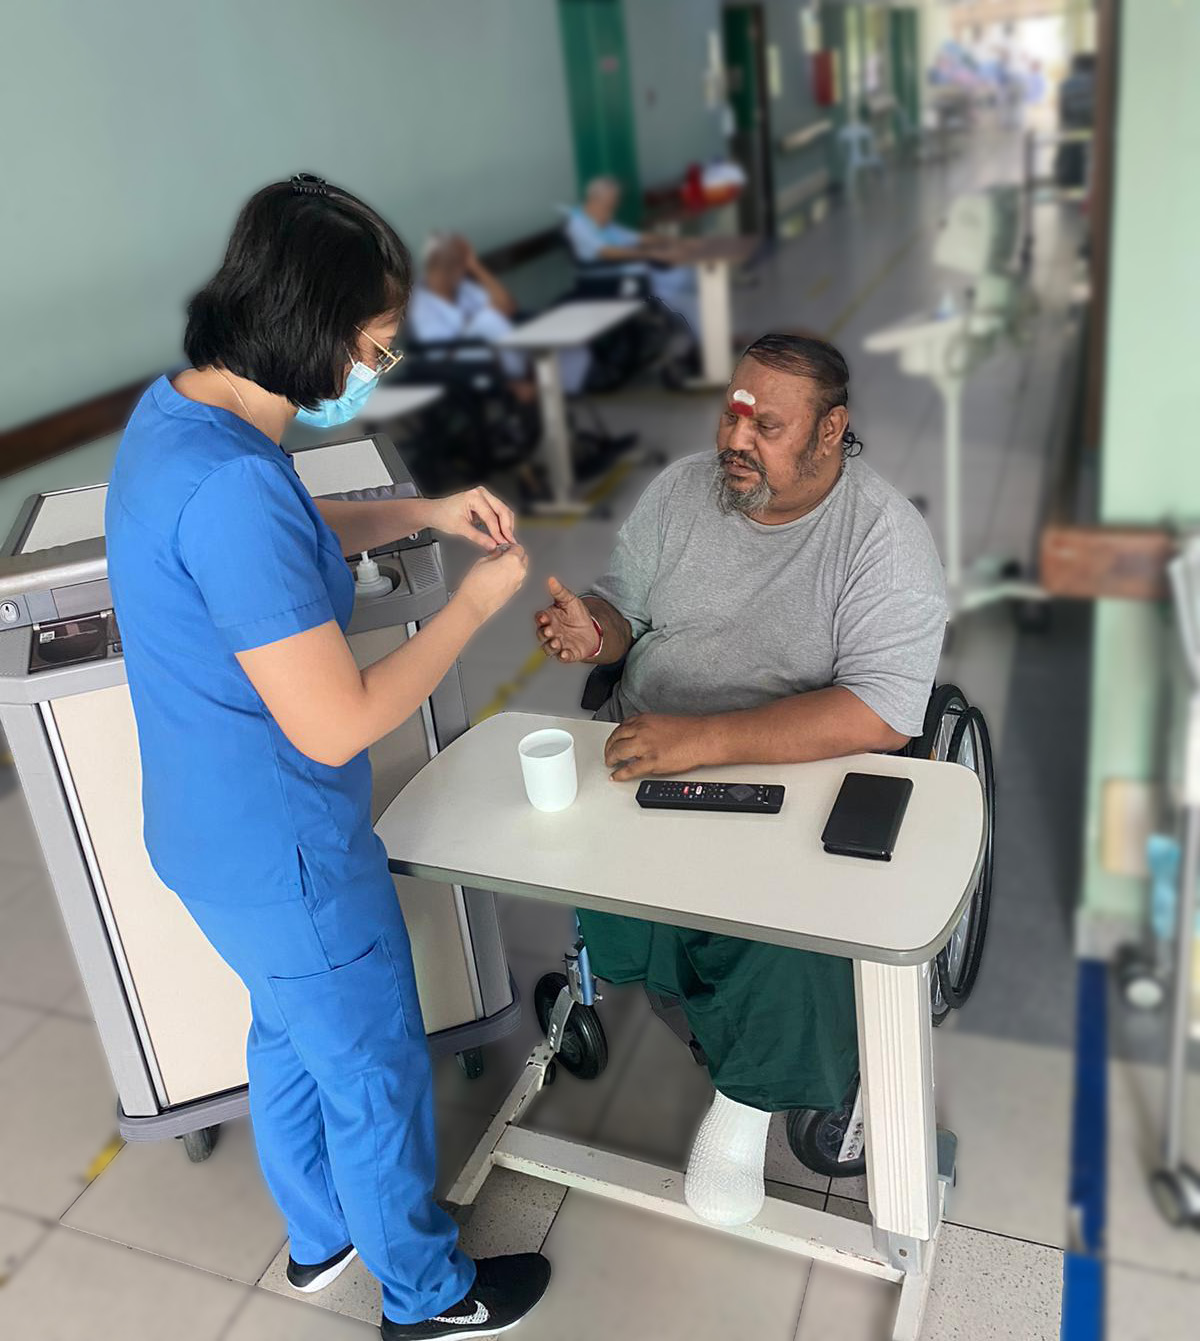 Staff training and the use of the Polypharmacy Form have helped improve medication safety among the residents in Sree Narayana Mission Nursing Home.